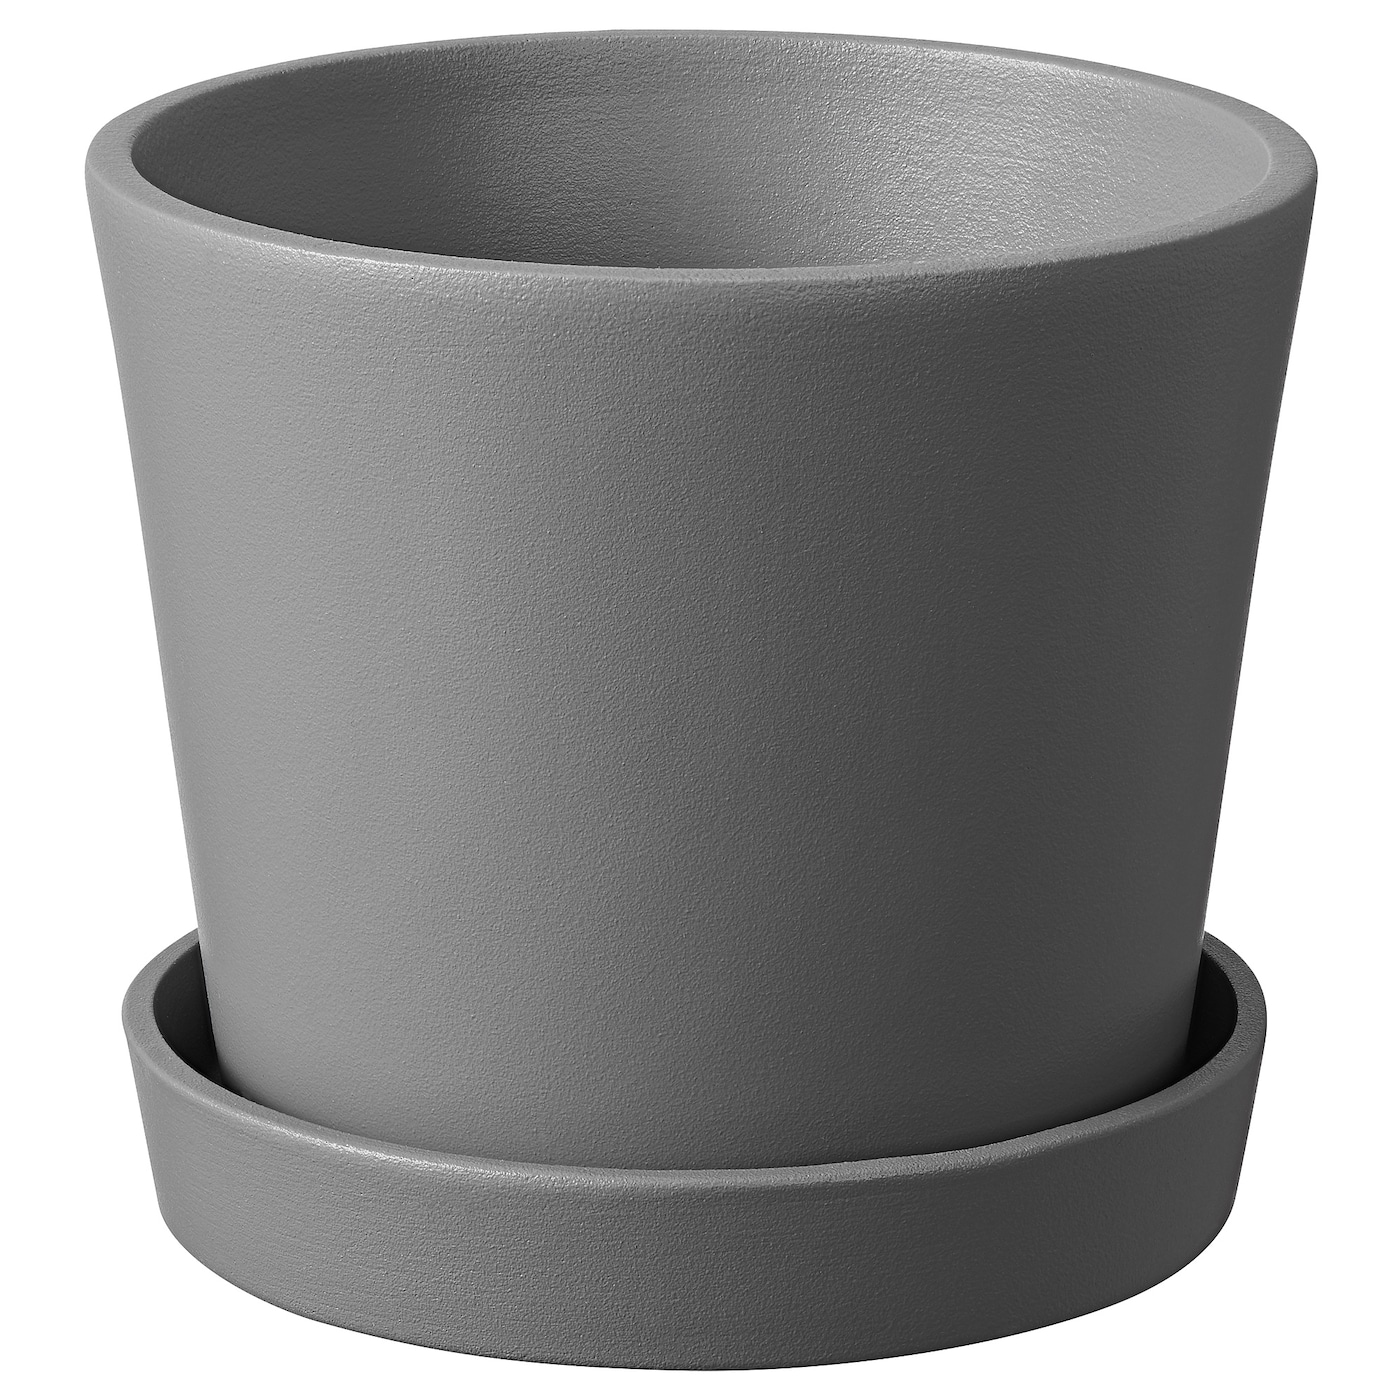 IKEA SMULGUBBE plant pot and saucer Lightweight, easy to lift and move.